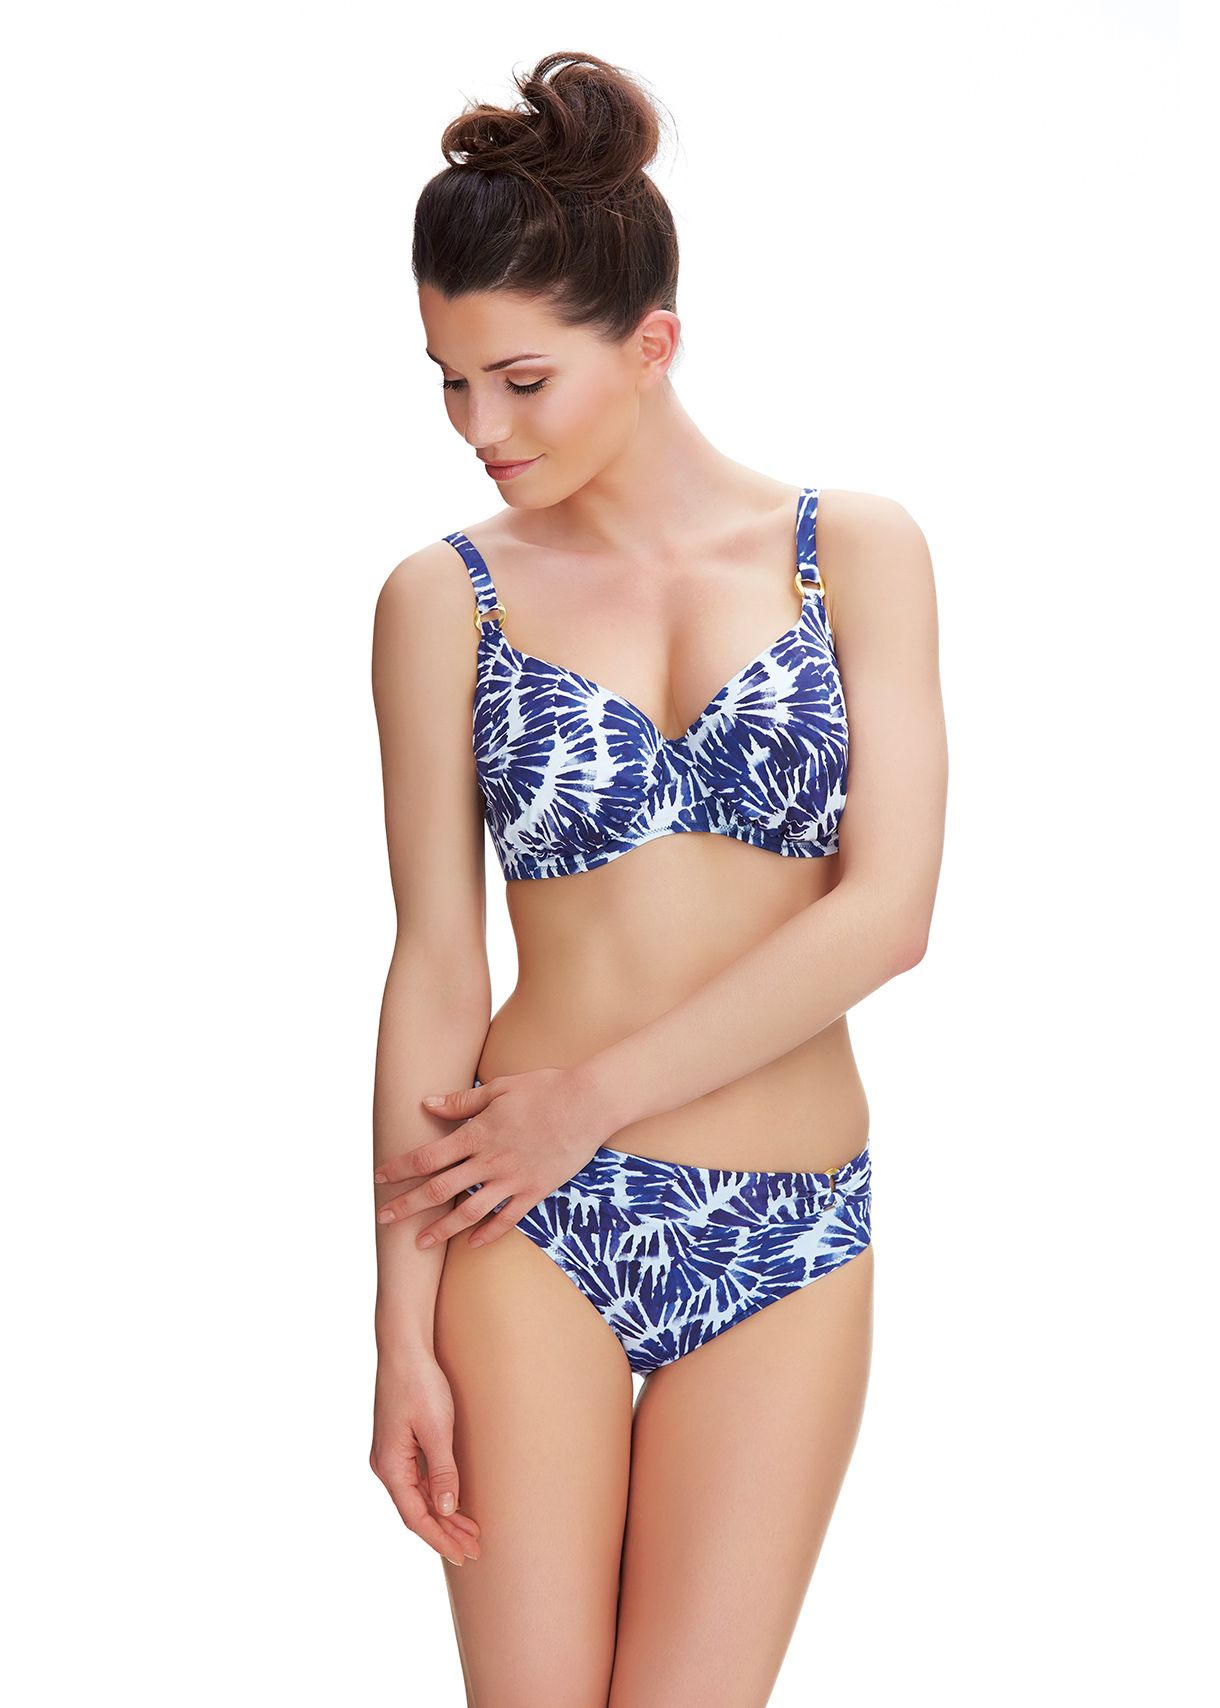 Fantasie Lanai Bikini Set in Nightshade